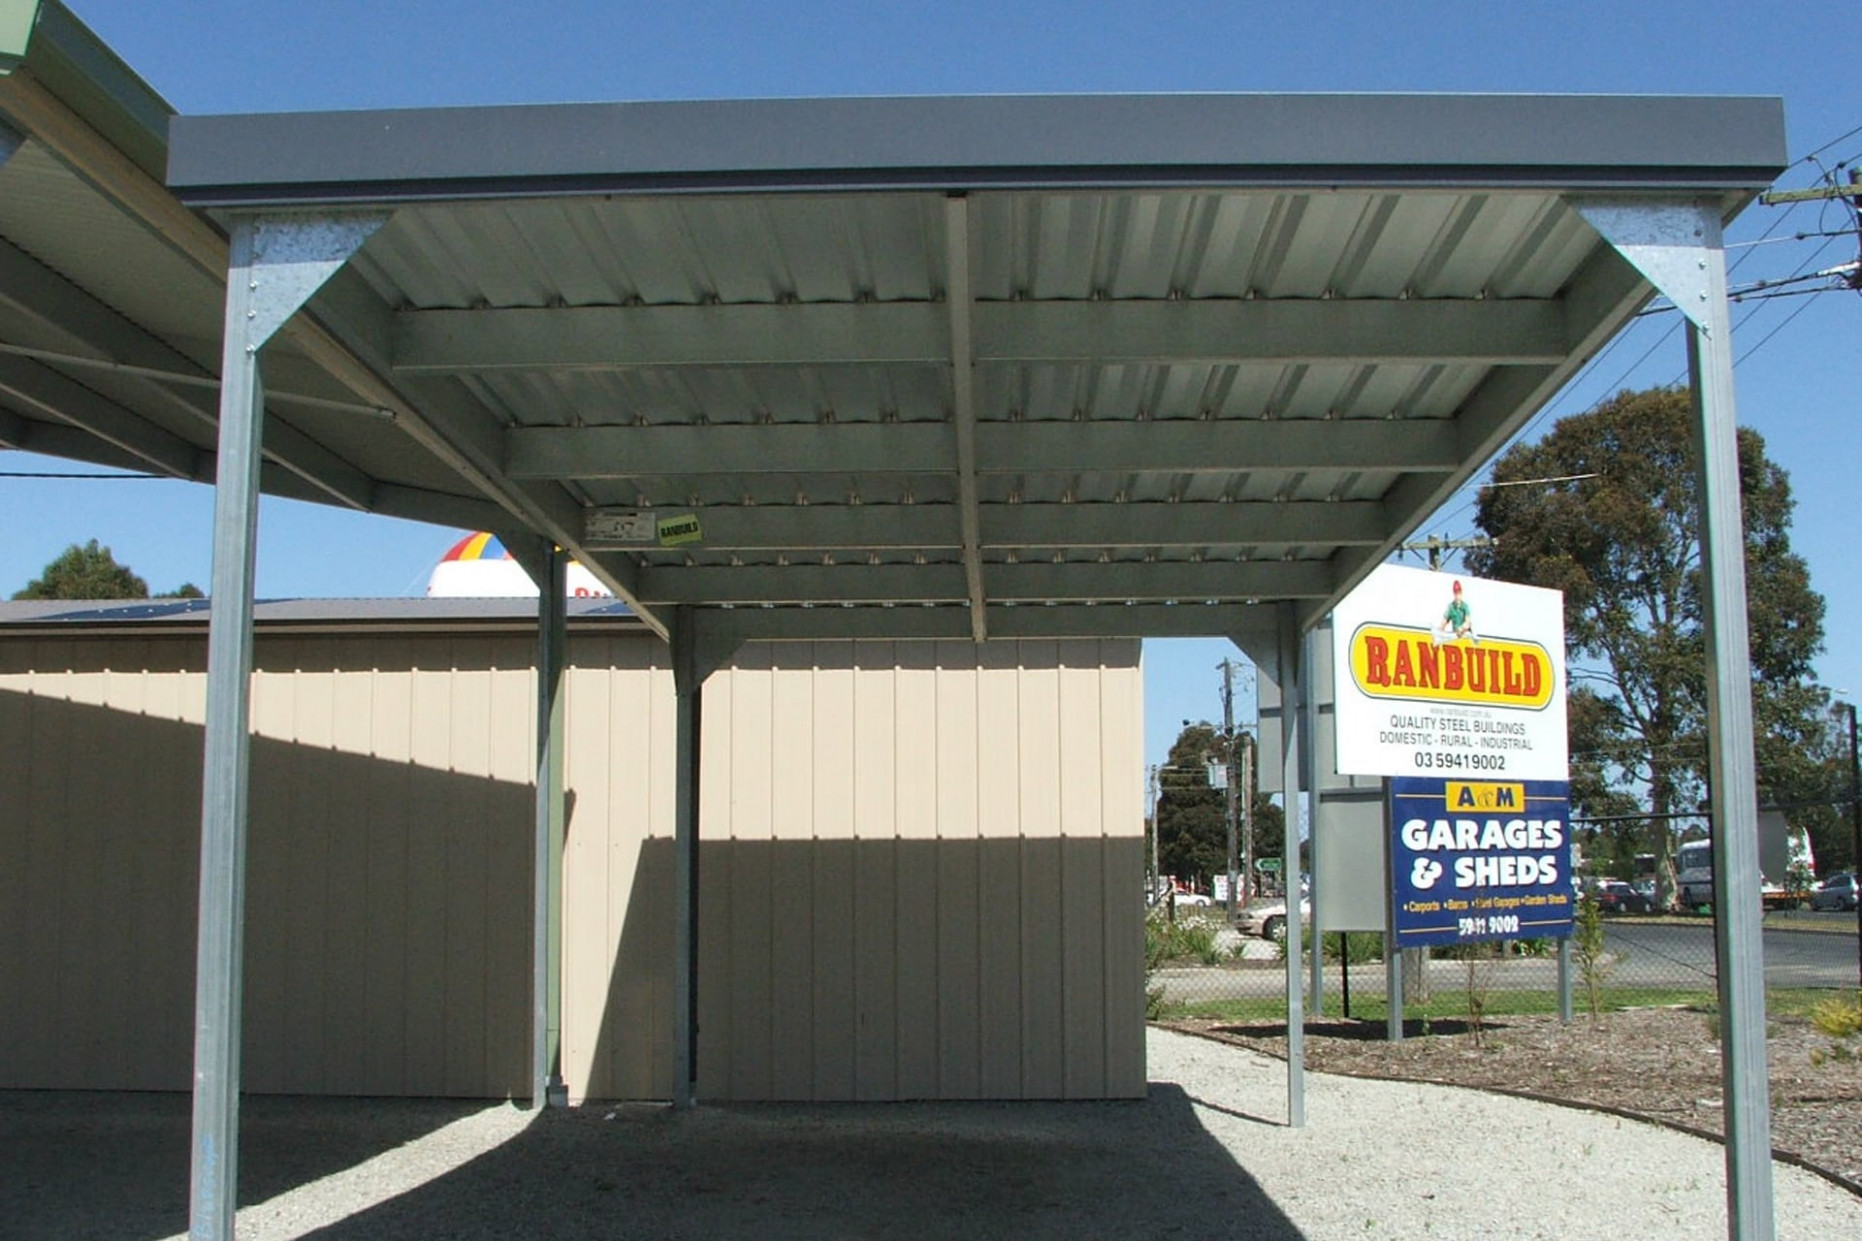 Carports Sheds And Garages For Sale Ranbuild Carports For Roof